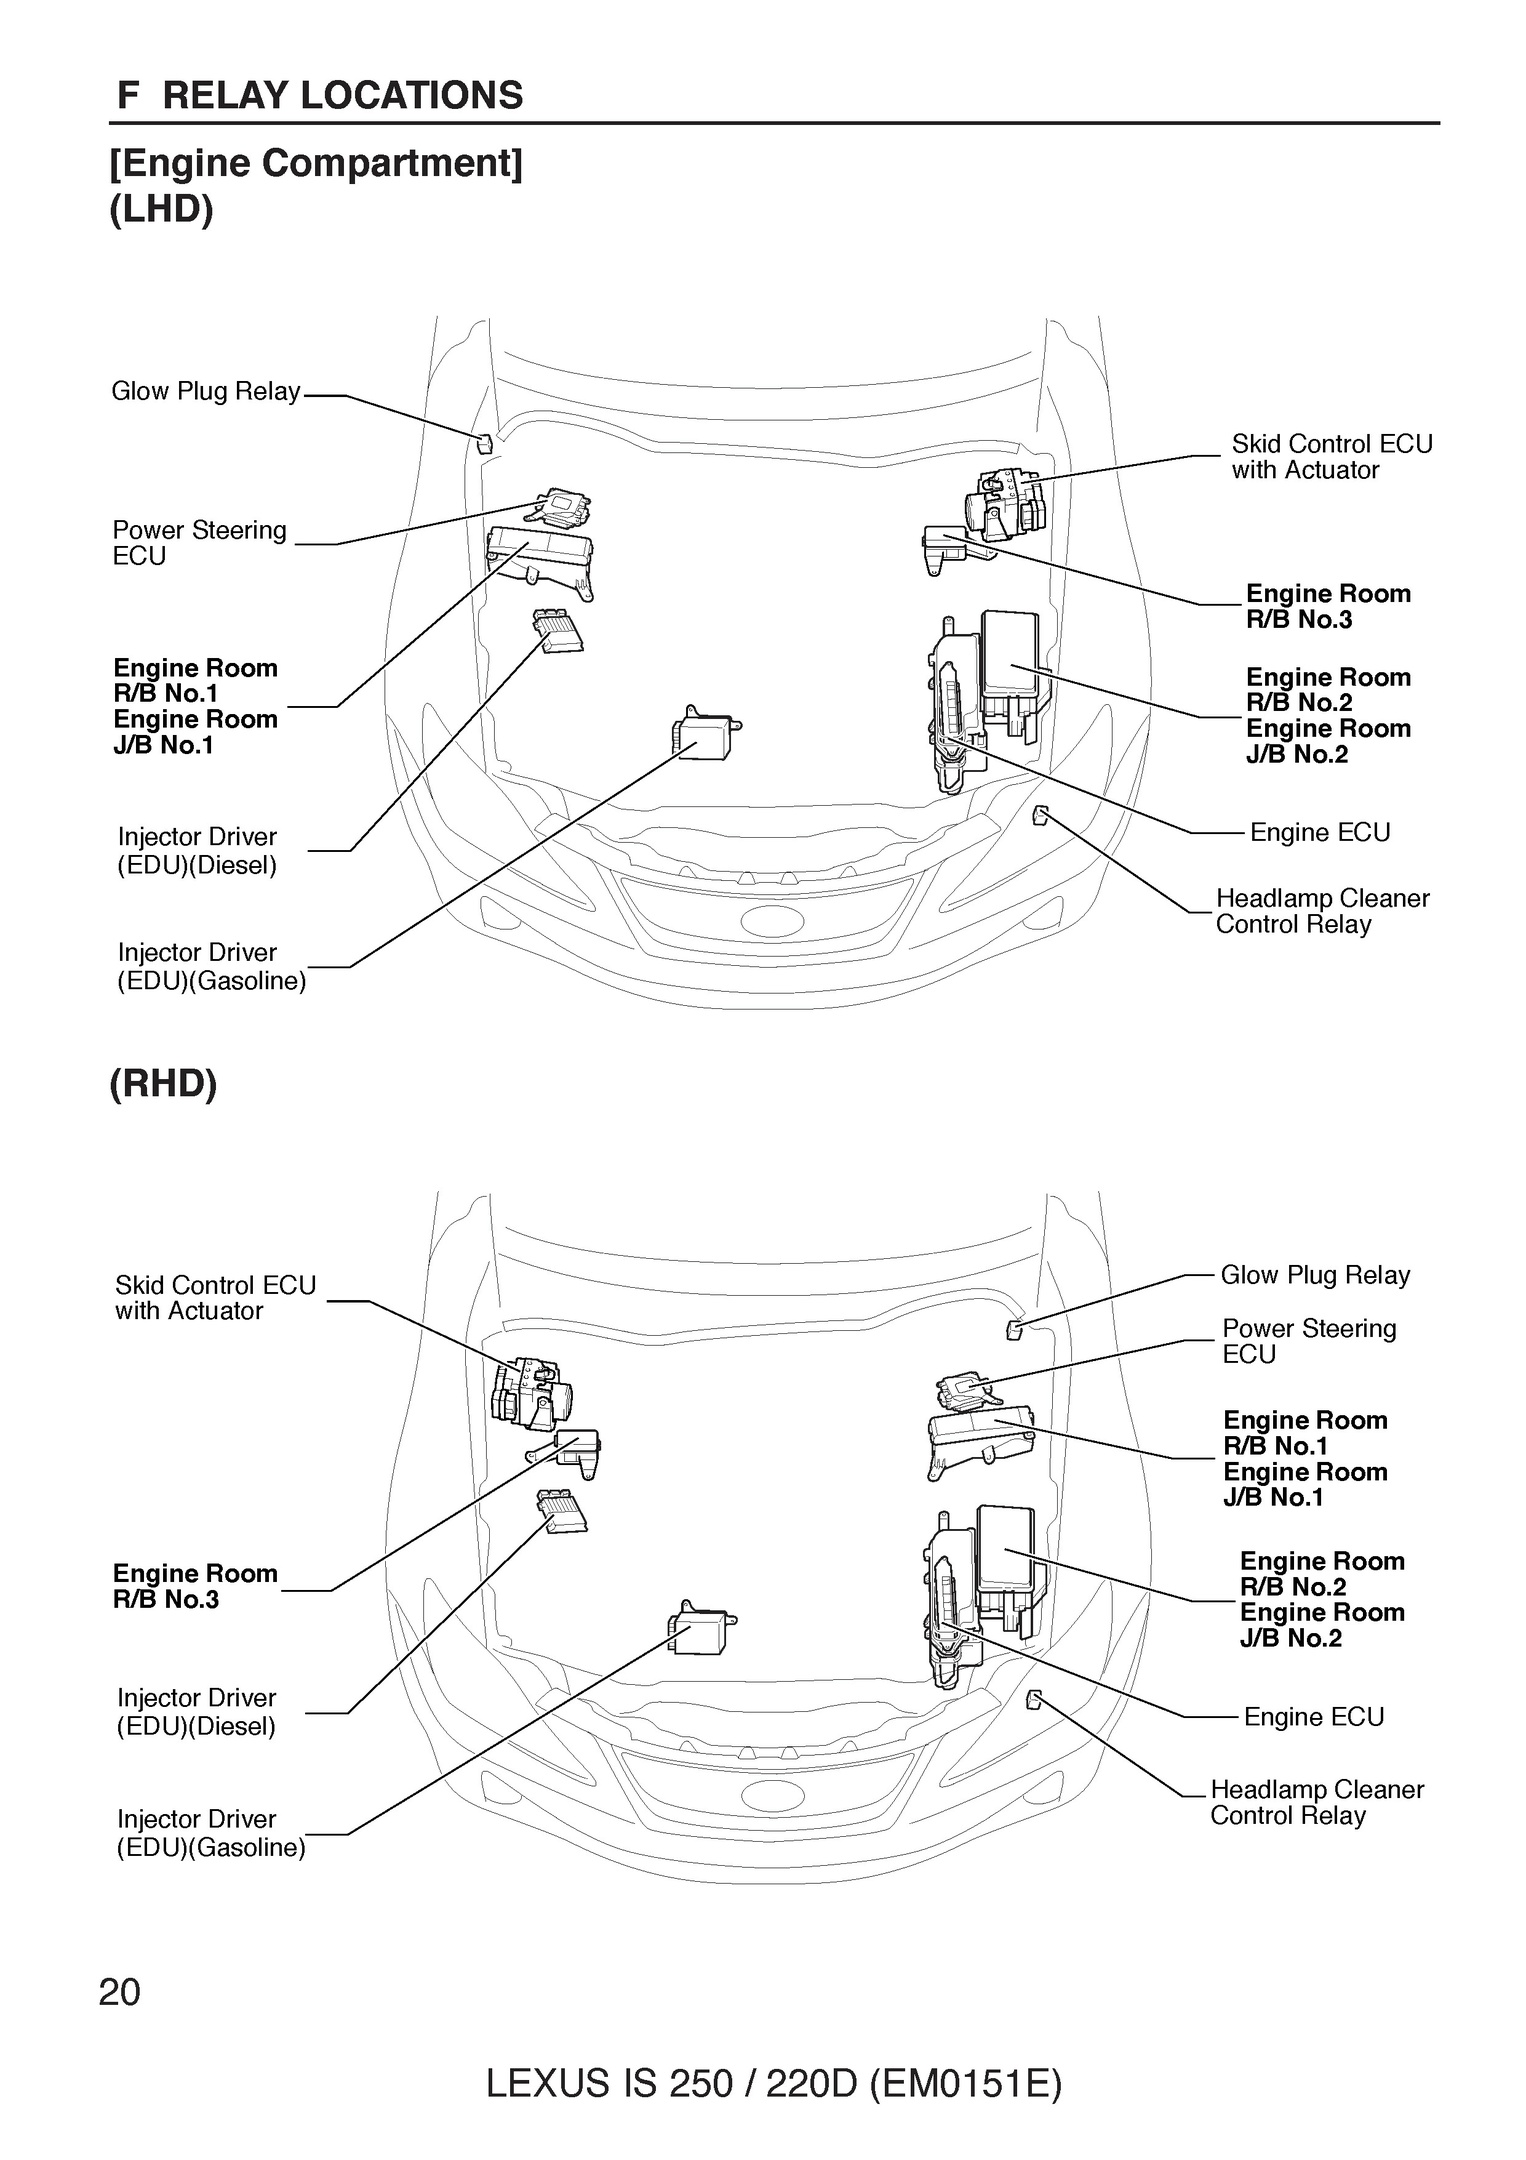 [NRIO_4796]   1D2 Lexus Is200 Headlight Wiring Diagram | Wiring Library | Lexus Is200 Wiring Diagrams Pdf |  | Wiring Library